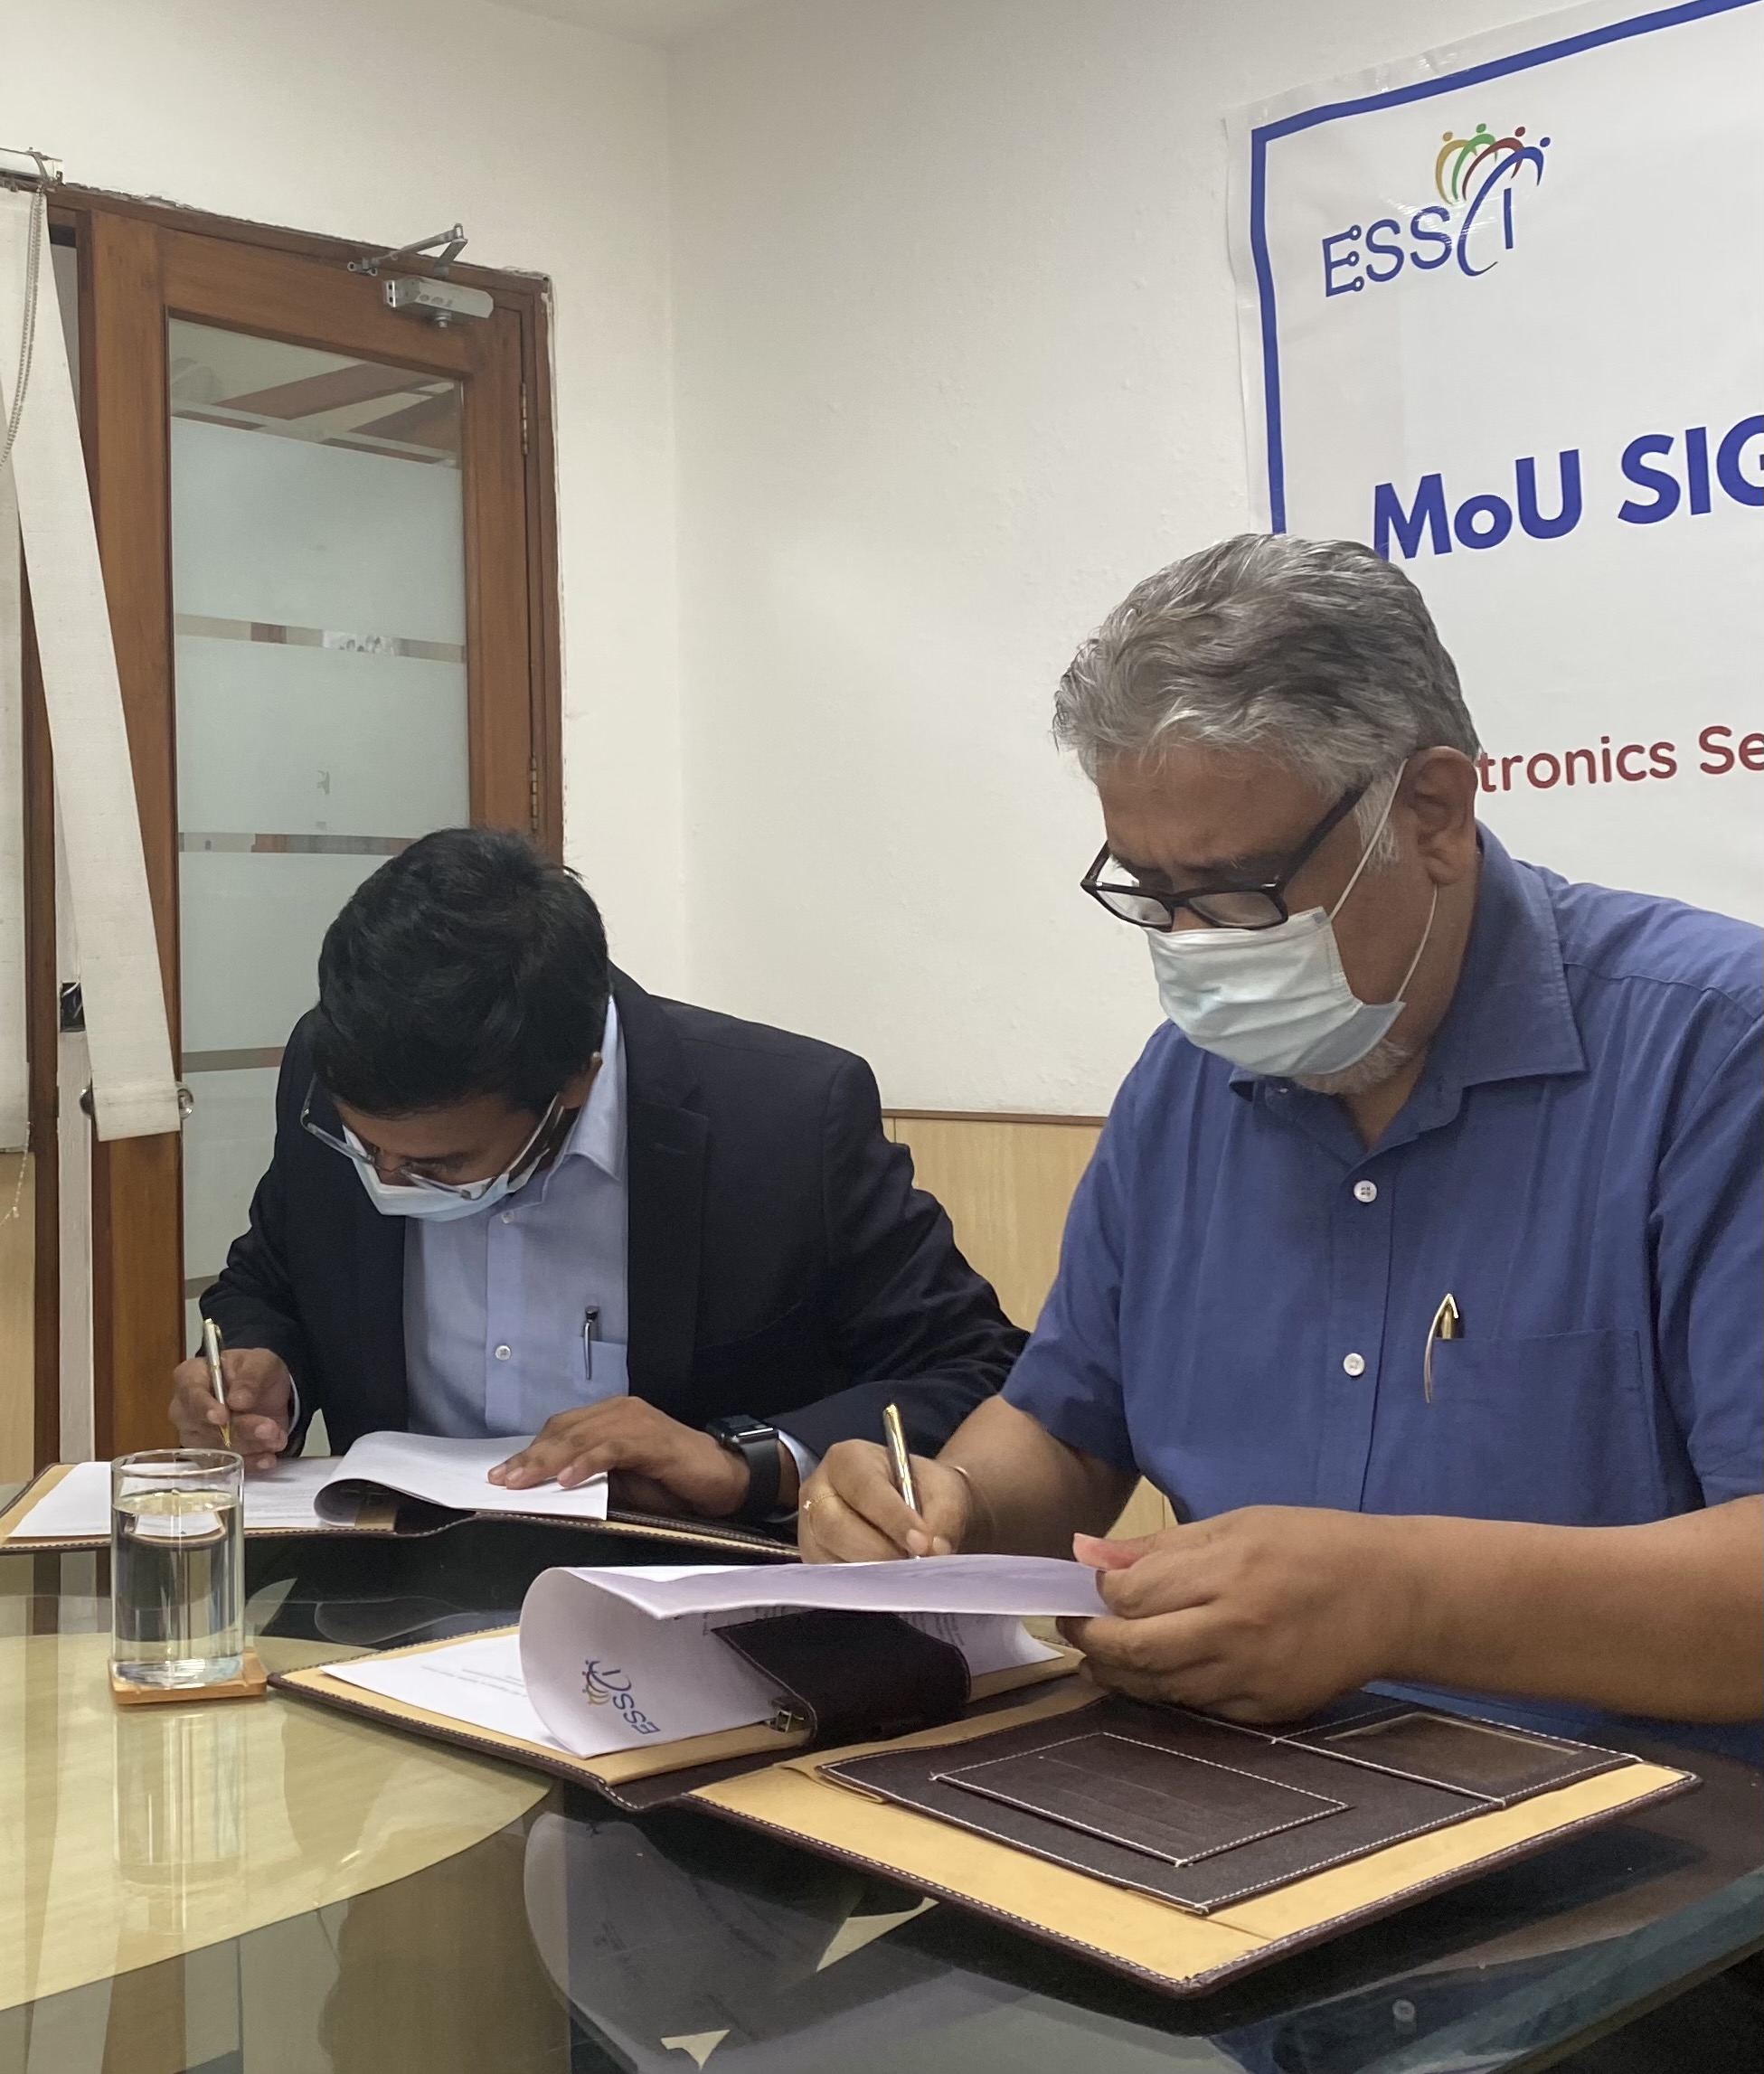 ESSCI signs MoU with IG Drones